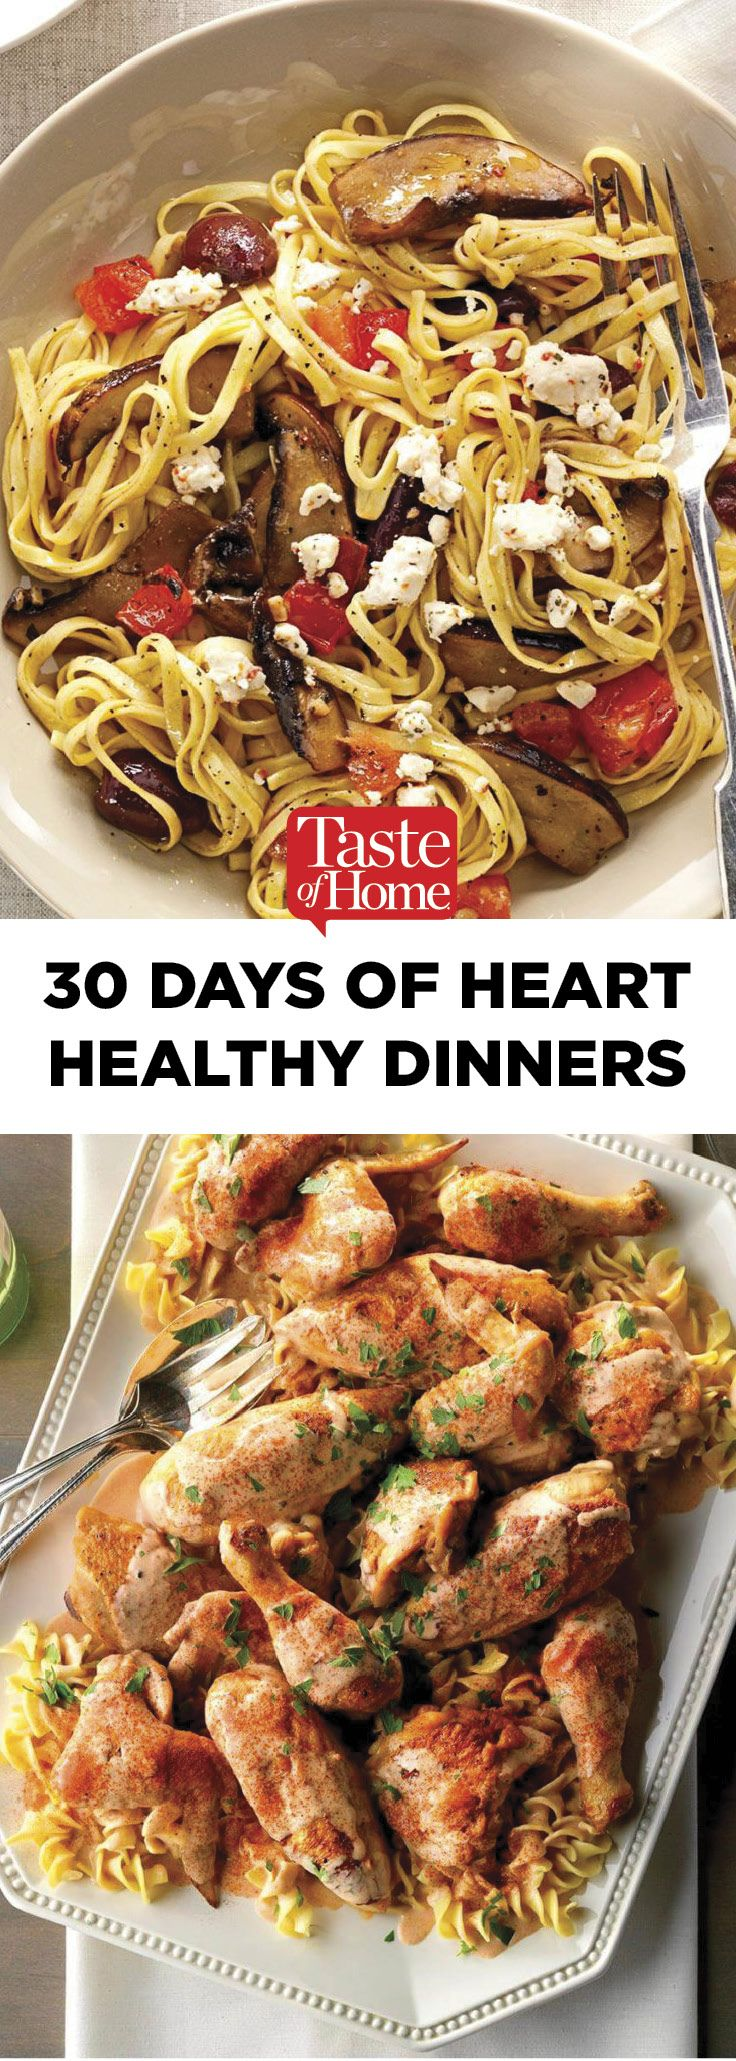 30 Days of Heart-Healthy Dinners images